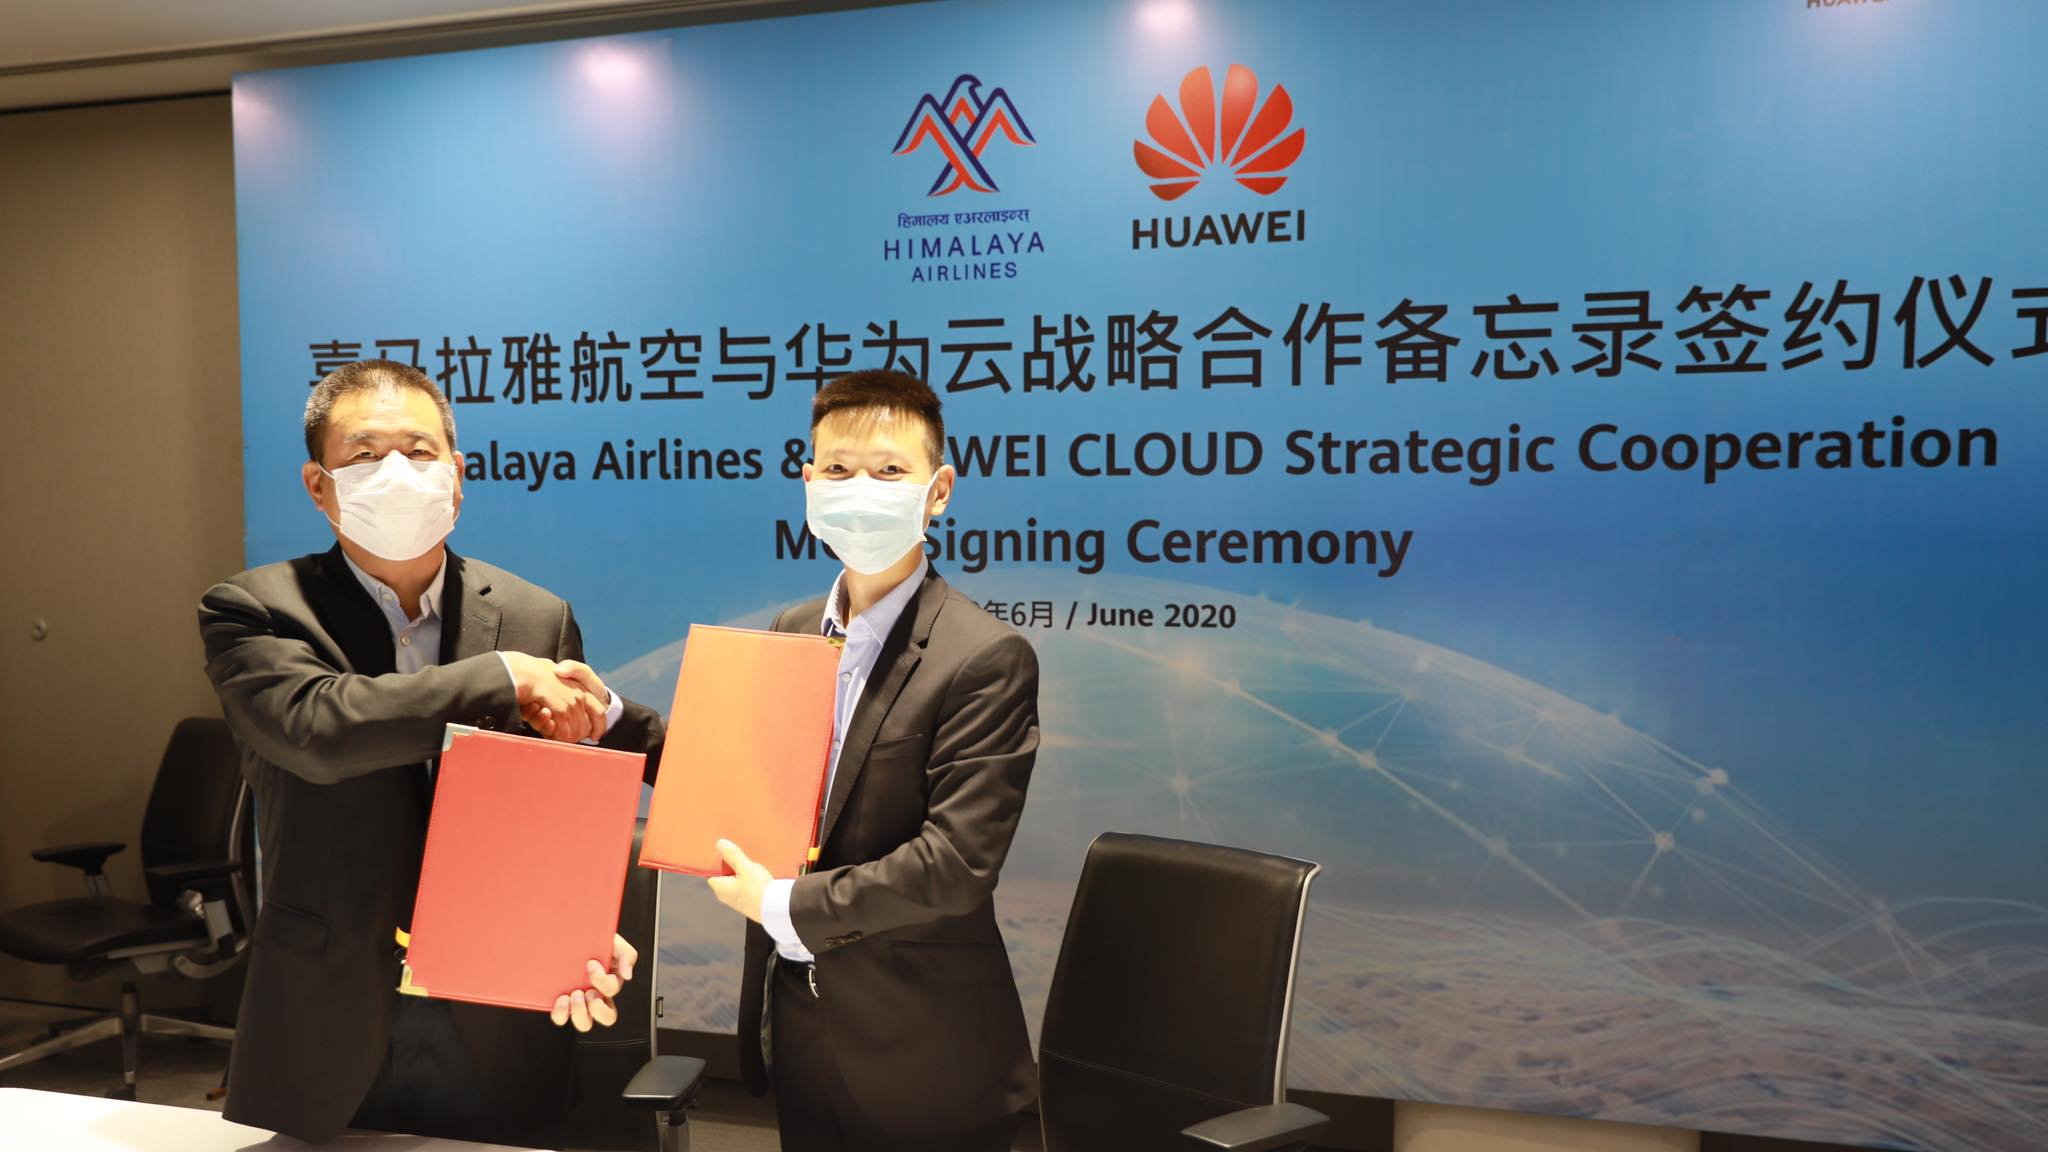 Himalaya Airlines, Huawei Cloud sign MoU for strategic cooperation